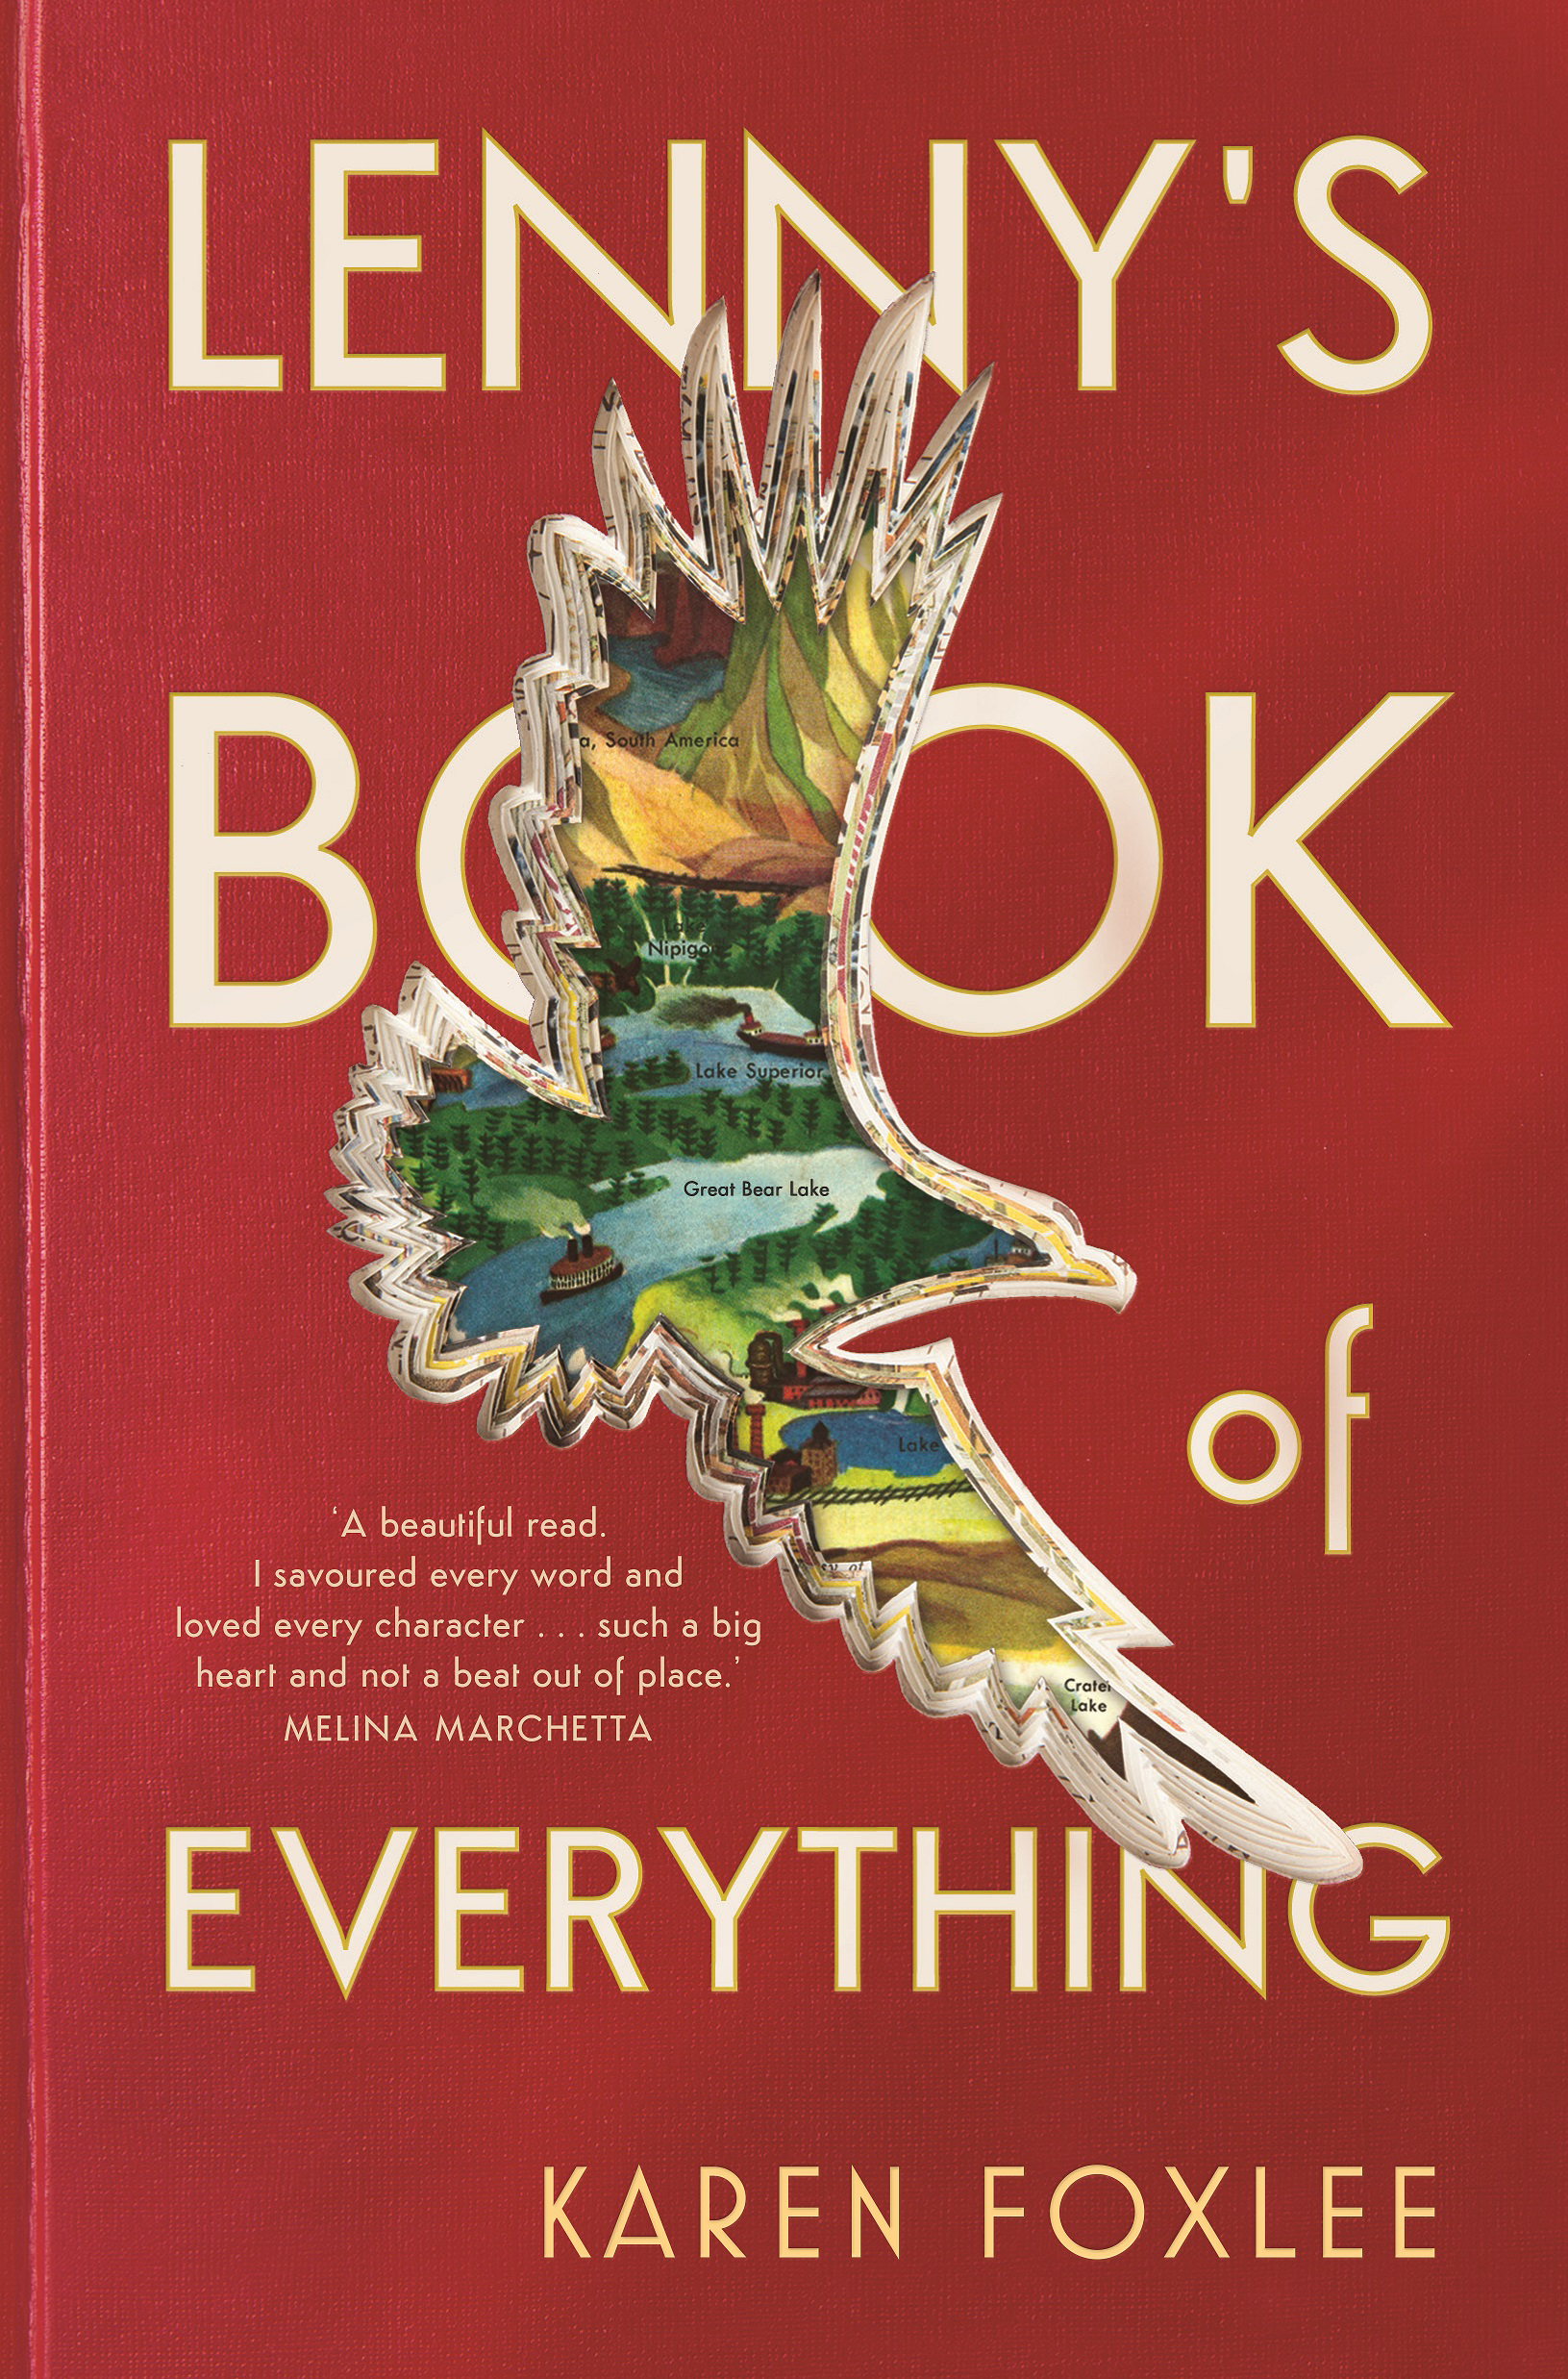 lenny's book of everything cover.jpg